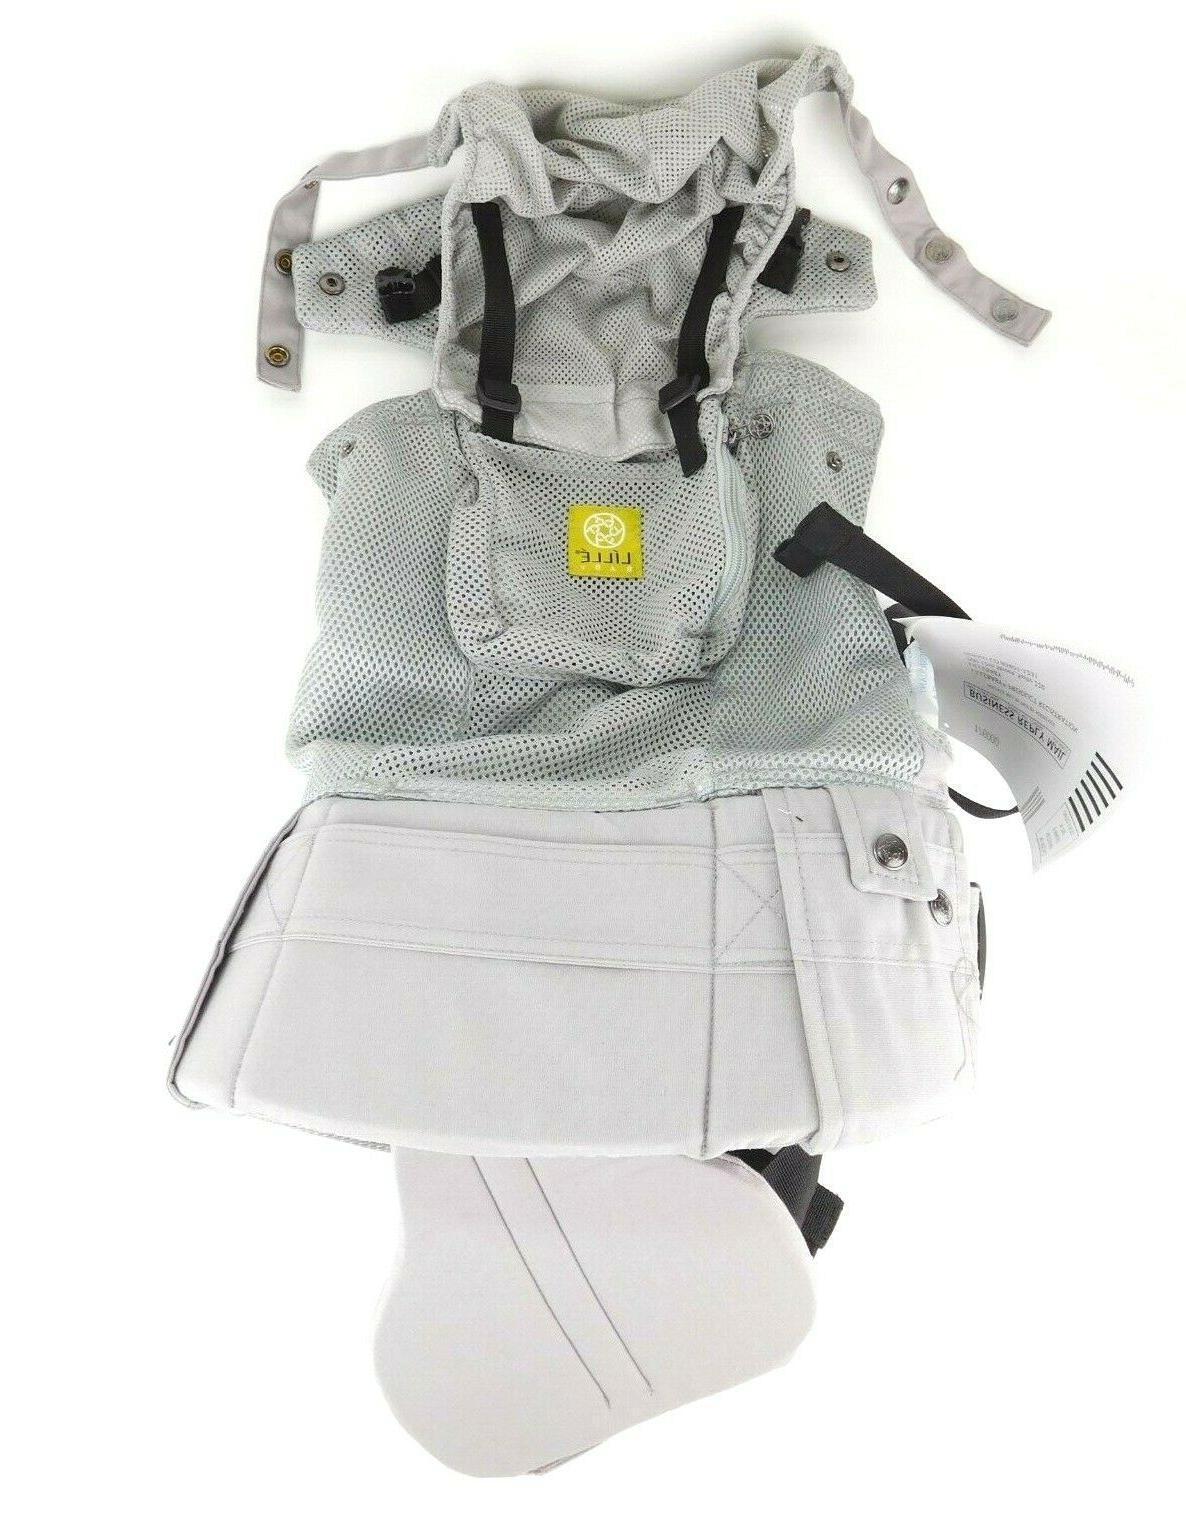 LILLEBABY Complete Breathable 3D Newborn-Toddler Baby Carrier